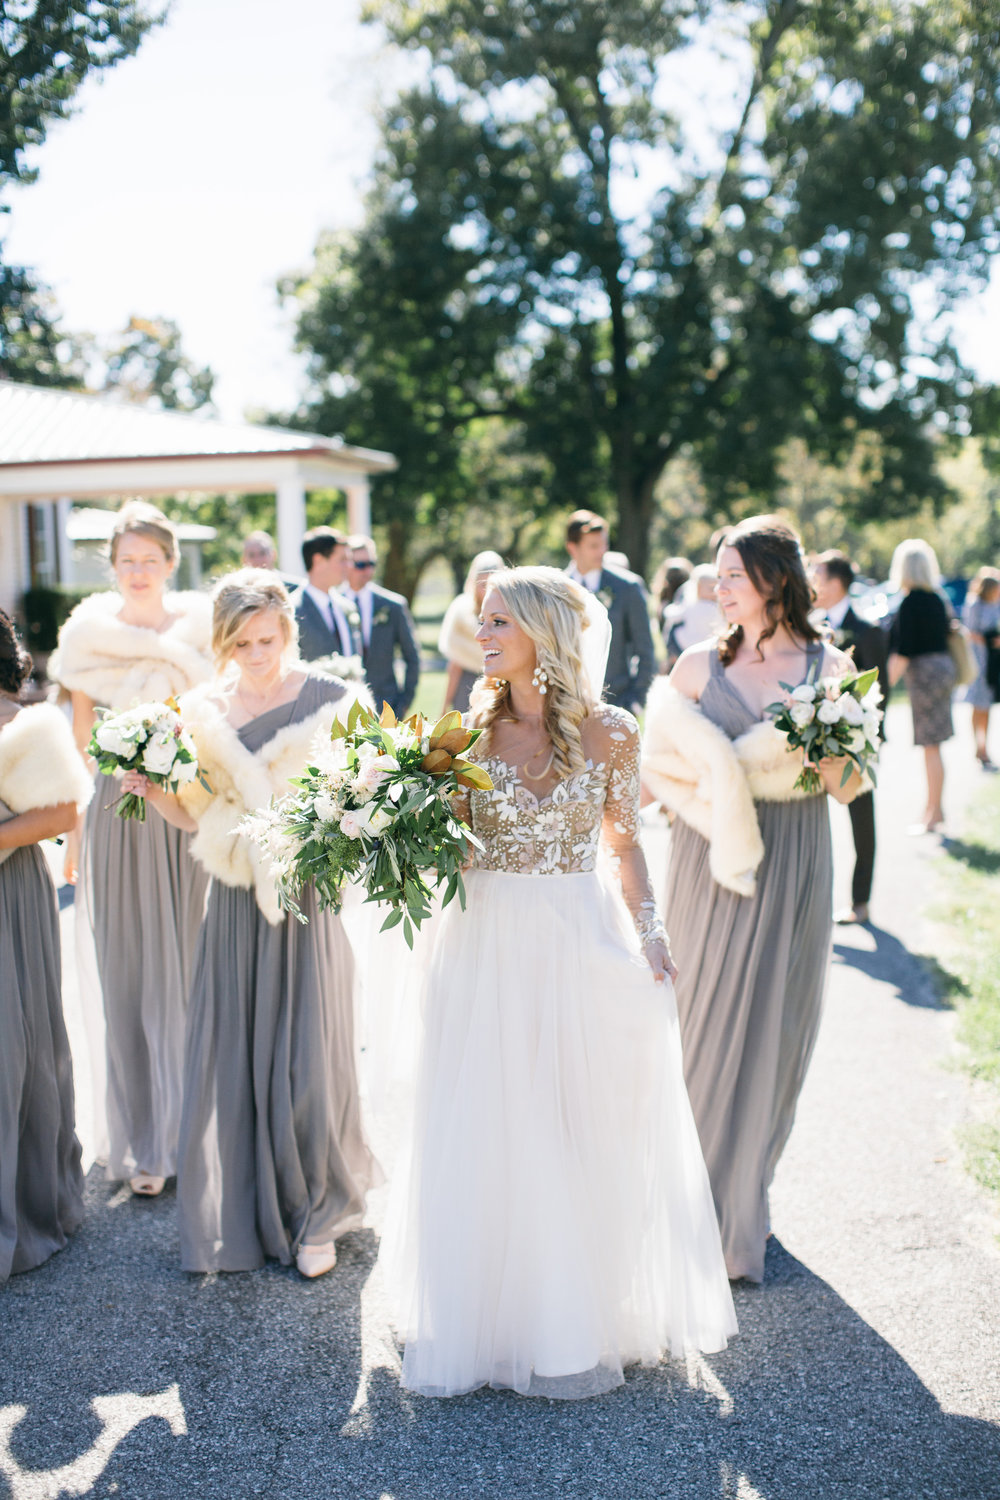 Tate & Mark    Kentucky to the core. Gorgeous horses, select bourbon, a cigar bar and a barn converted to a classic reception hall- this wedding had it all!This October wedding will forever be recorded as perfect in our books, we even had the weather on our side.